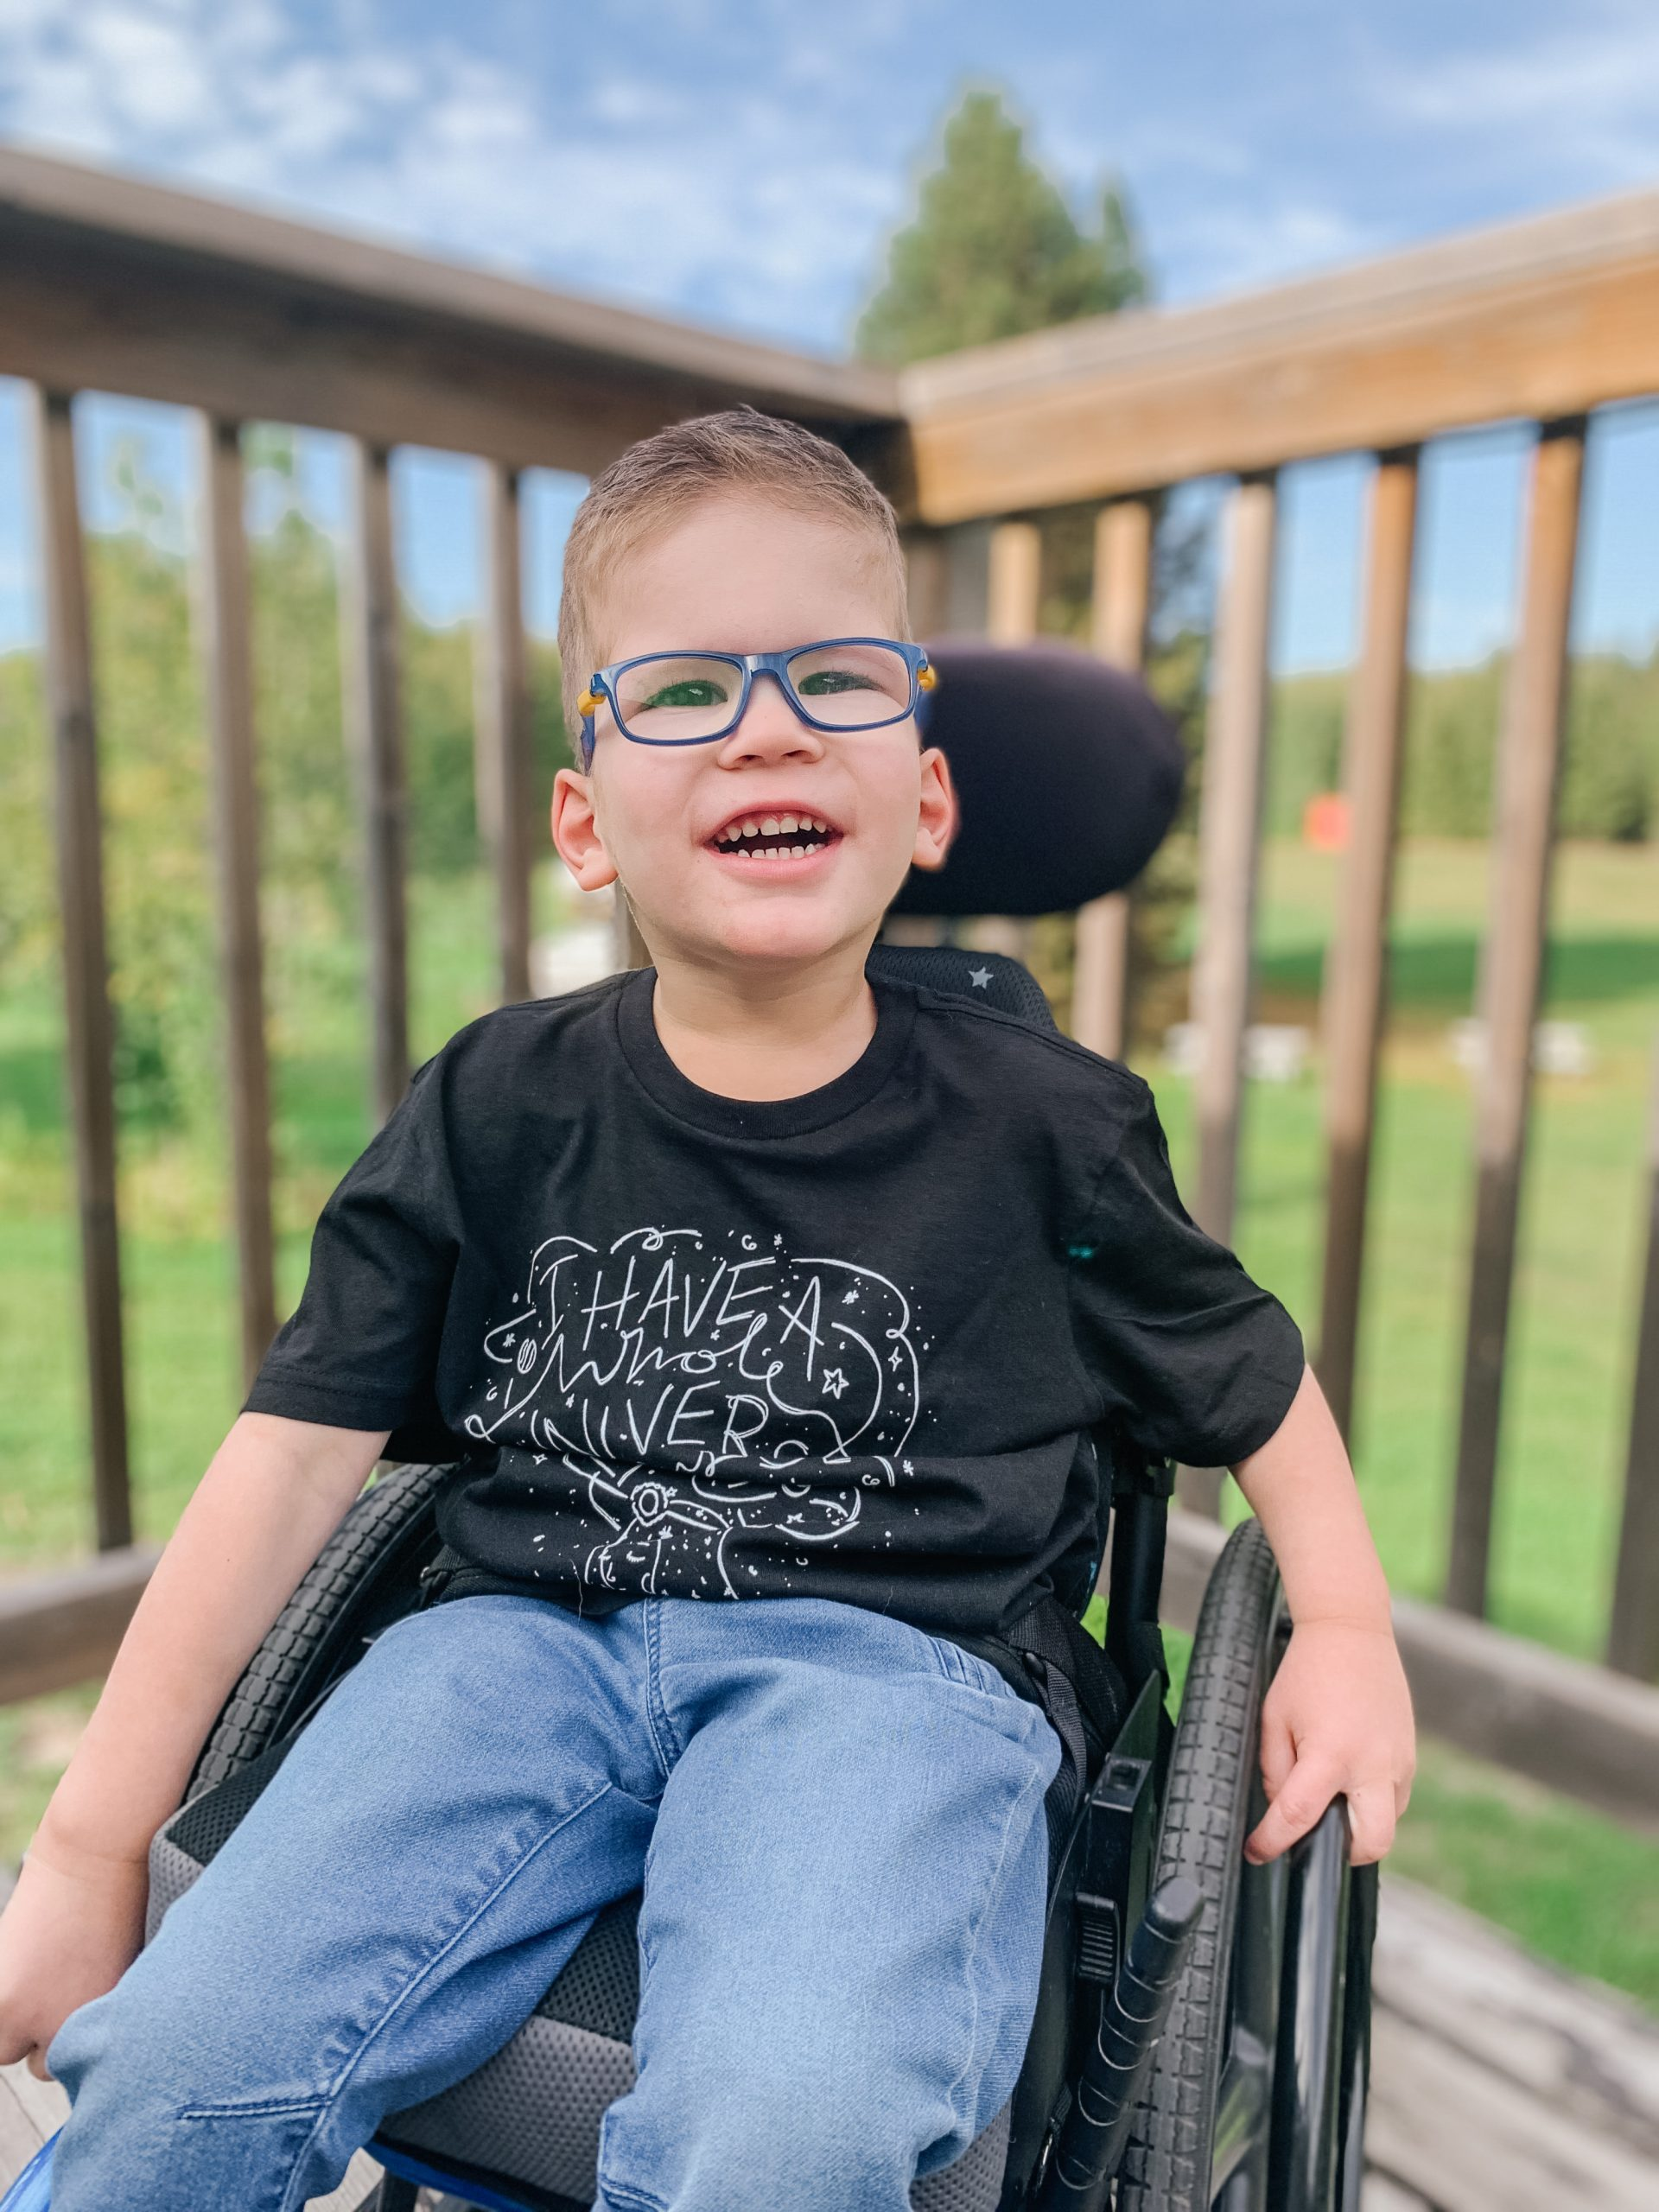 """preschool aged boy sits in his wheelchair wearing a shirt that says """"I have a whole Universe in my mind"""" to showcase that though he is nonspeaking, he has thoughts and ideas that he would love the opportunity to communicate"""